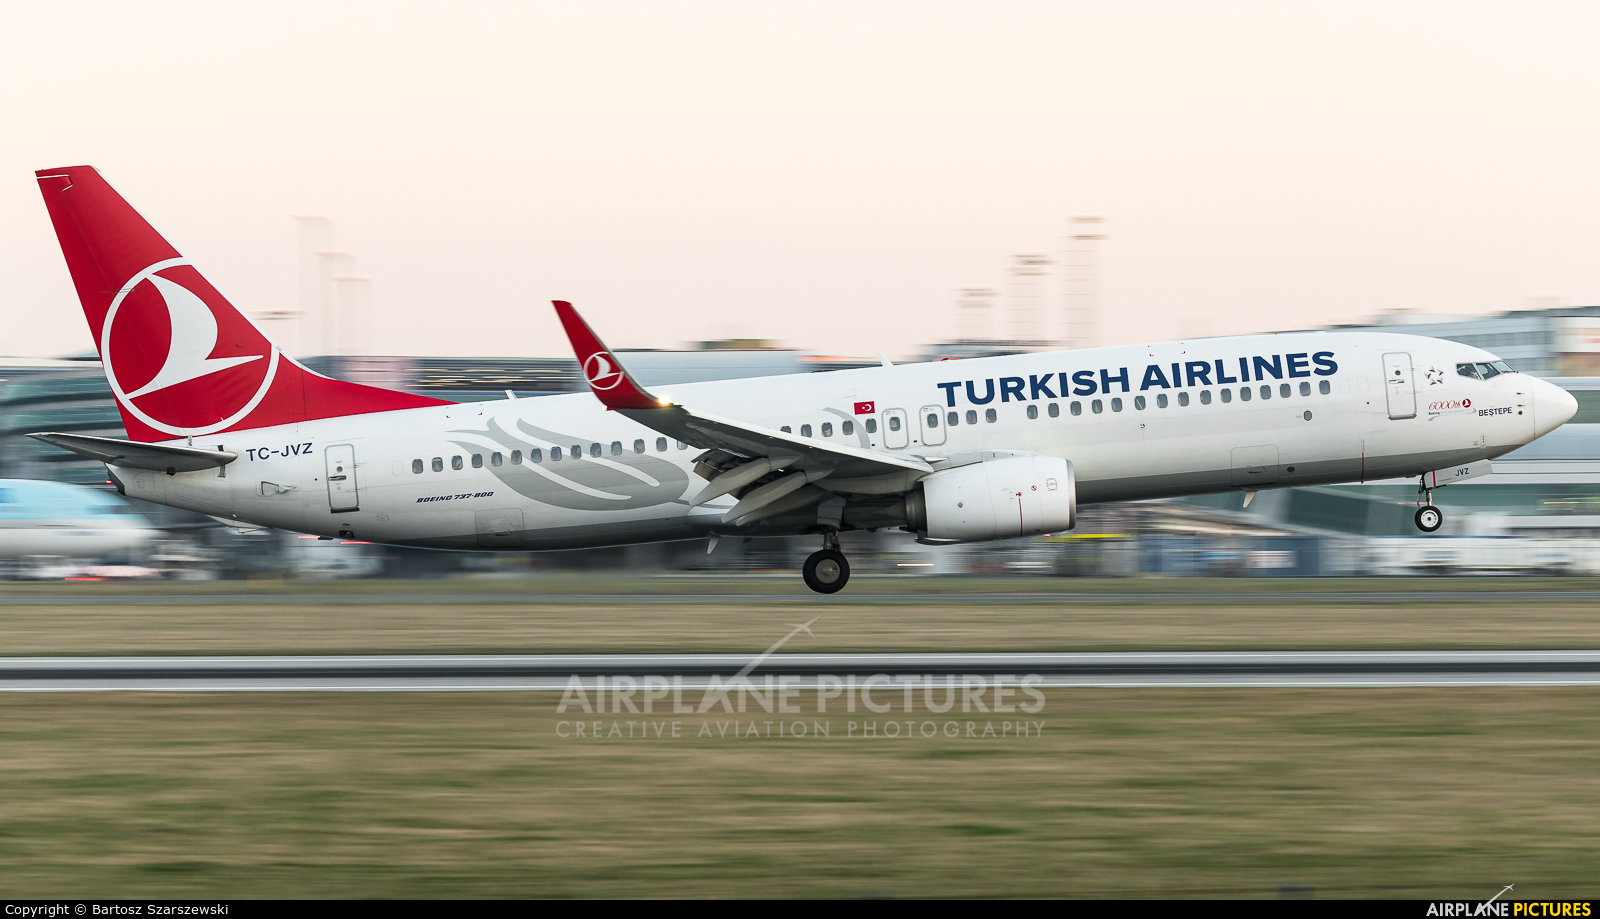 Turkish Airlines TC-JVZ aircraft at Prague - Václav Havel